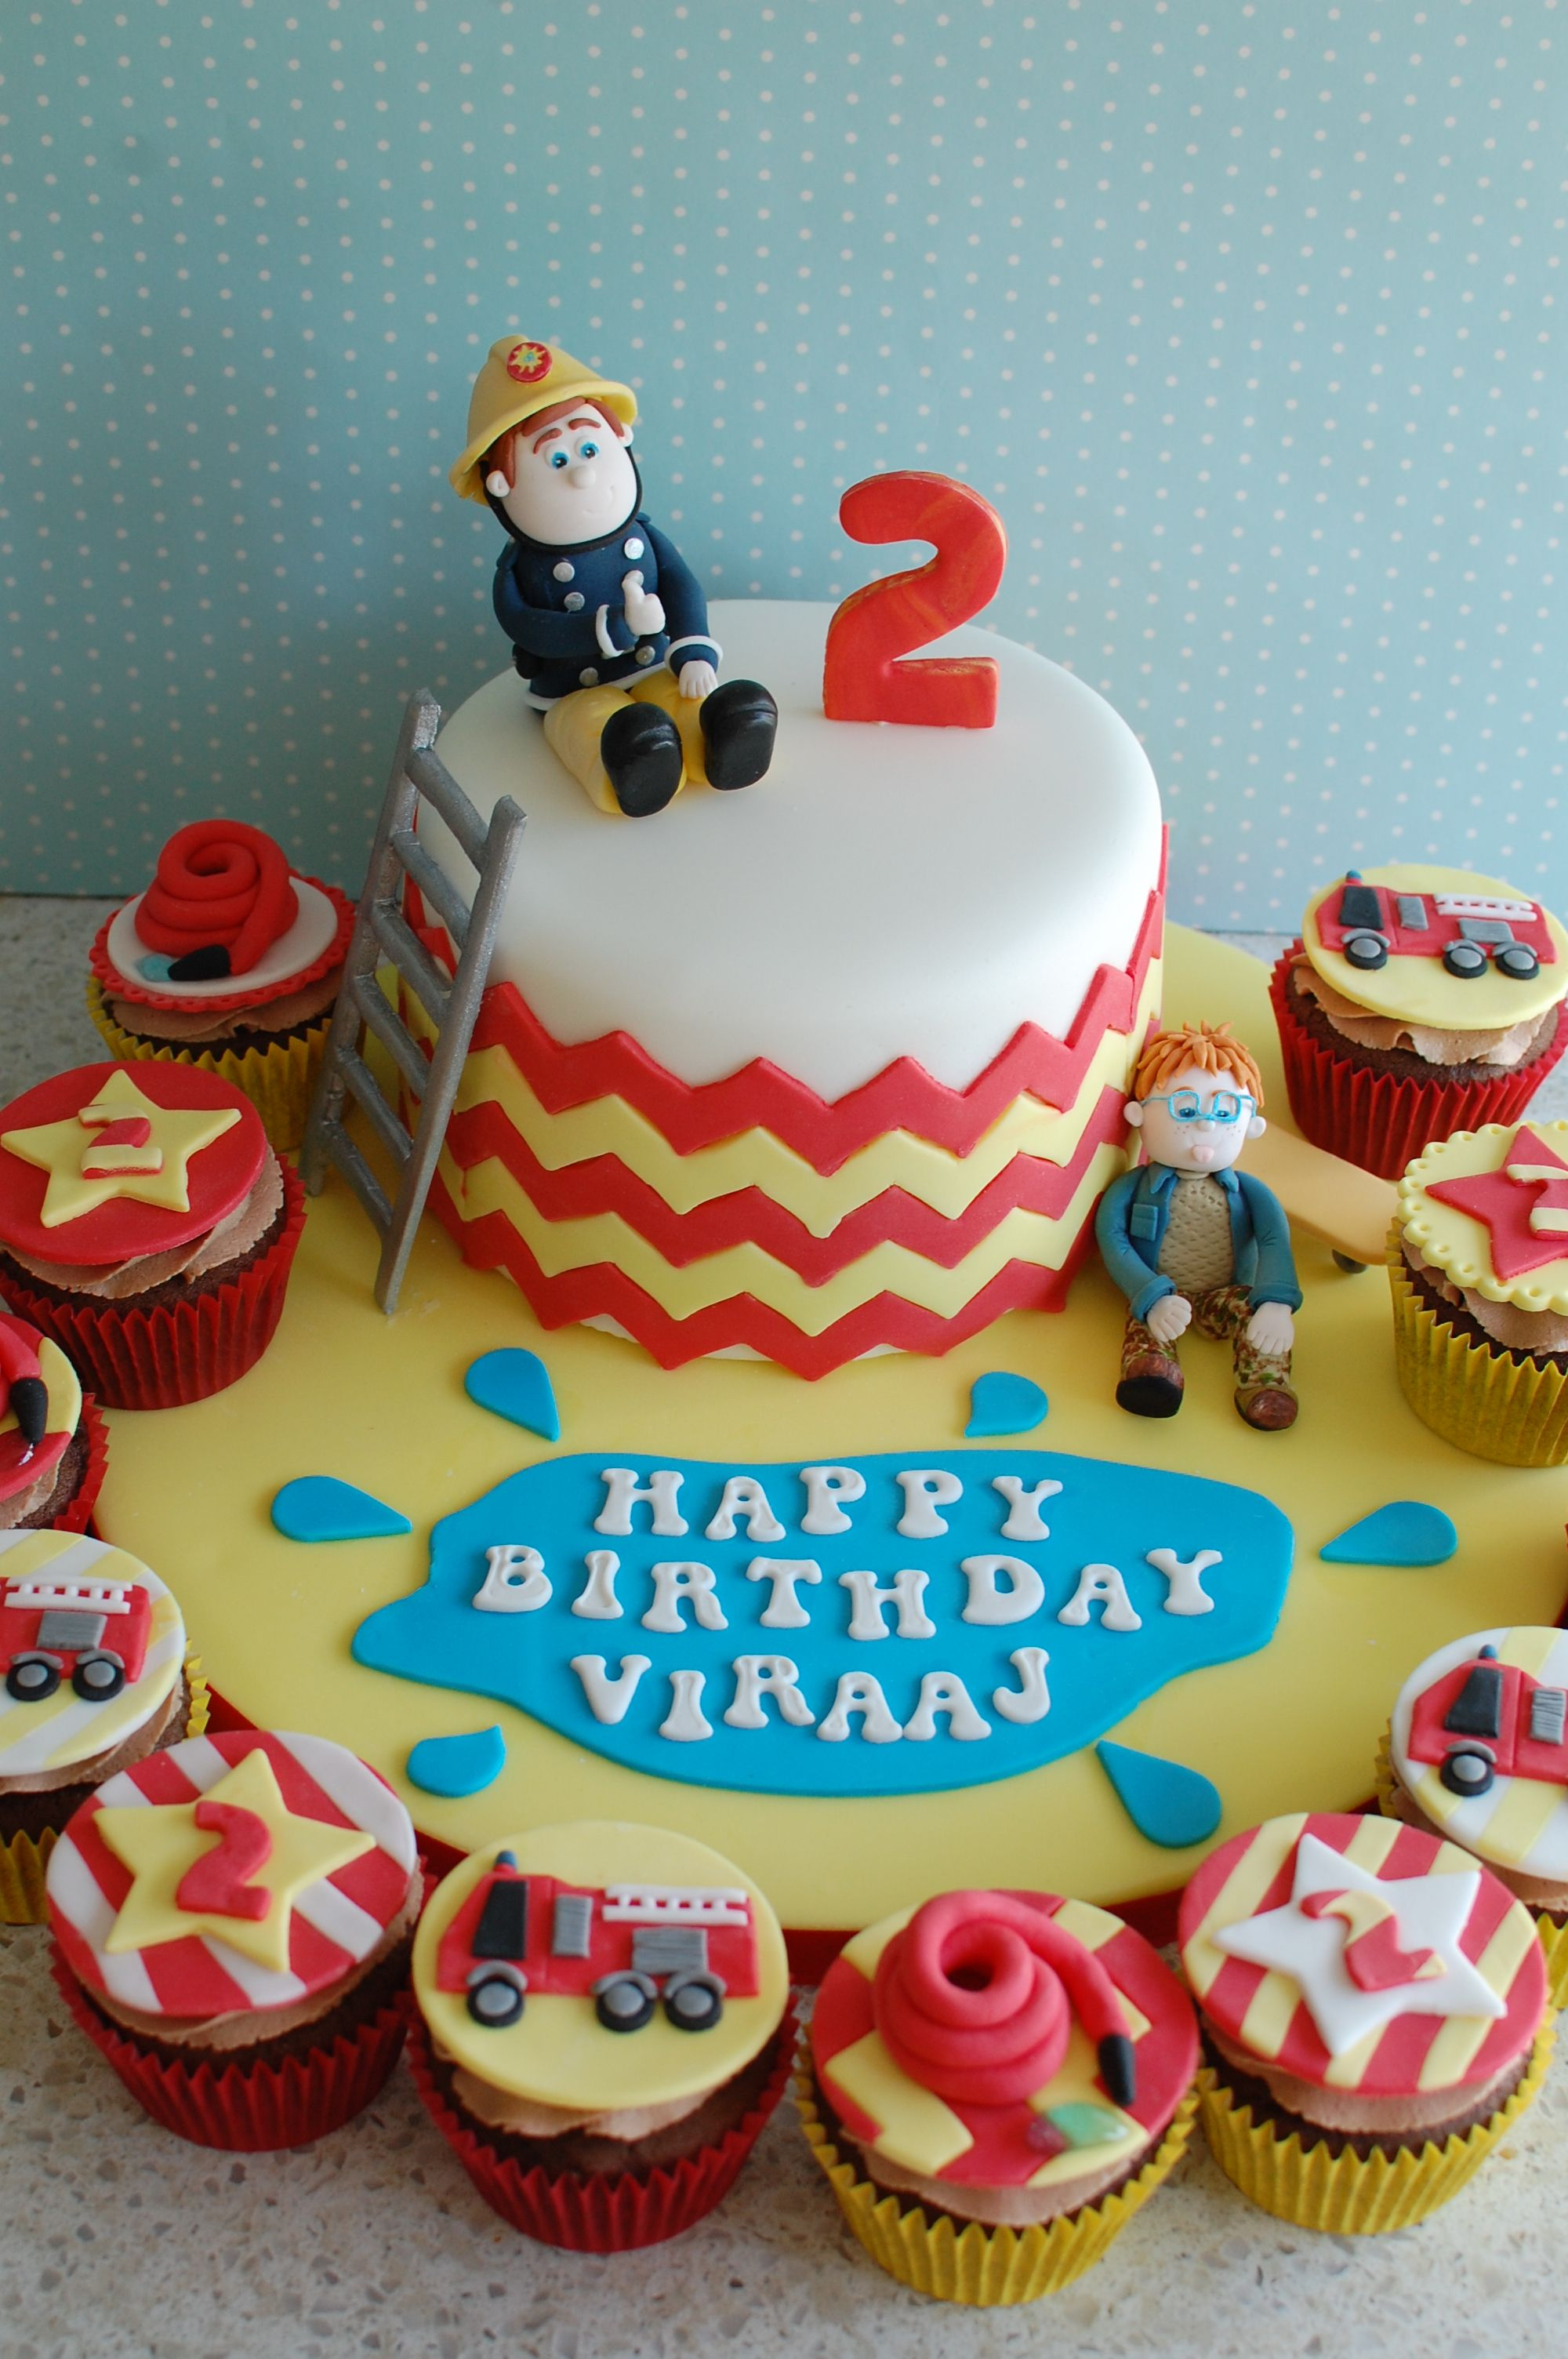 Fireman Sam Themed Birthday Cake And Cupcakes For Viraaj On His 2nd